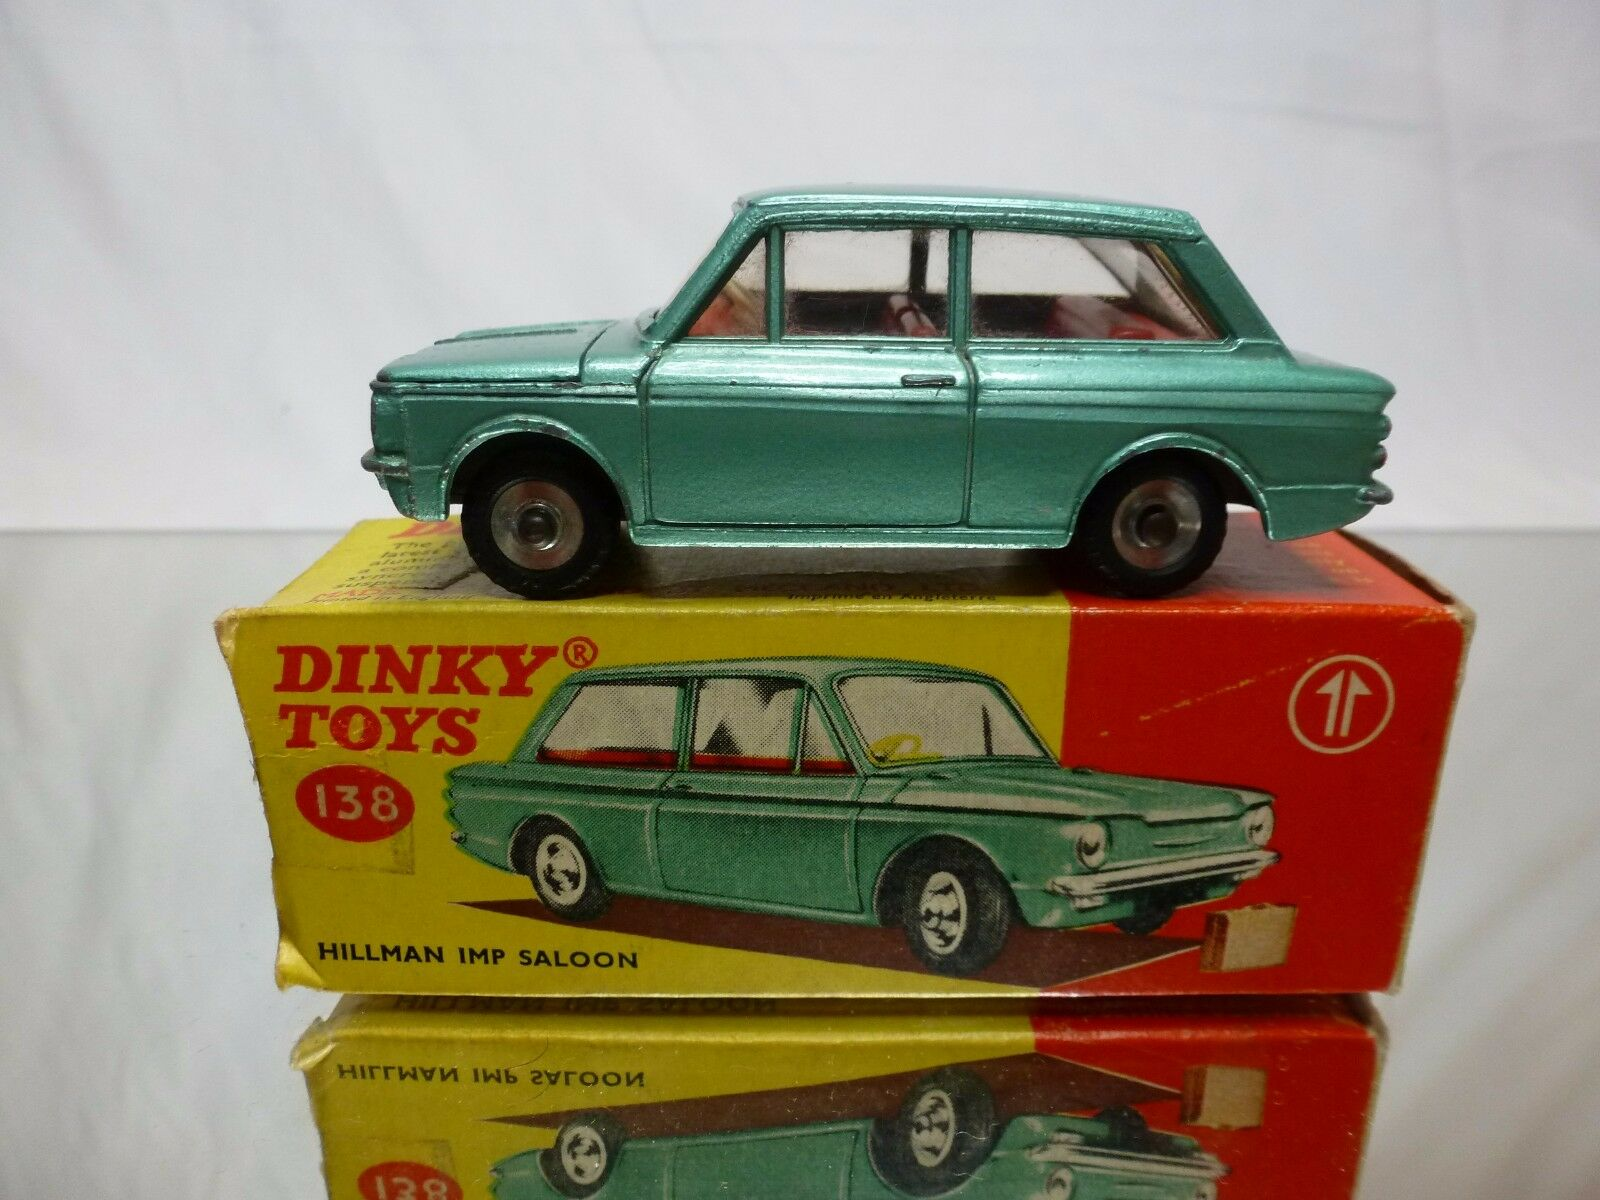 DINKY TOYS  138 HILLMAN IMP SALOON - GREEN 1 43 - GOOD CONDITION IN BOX